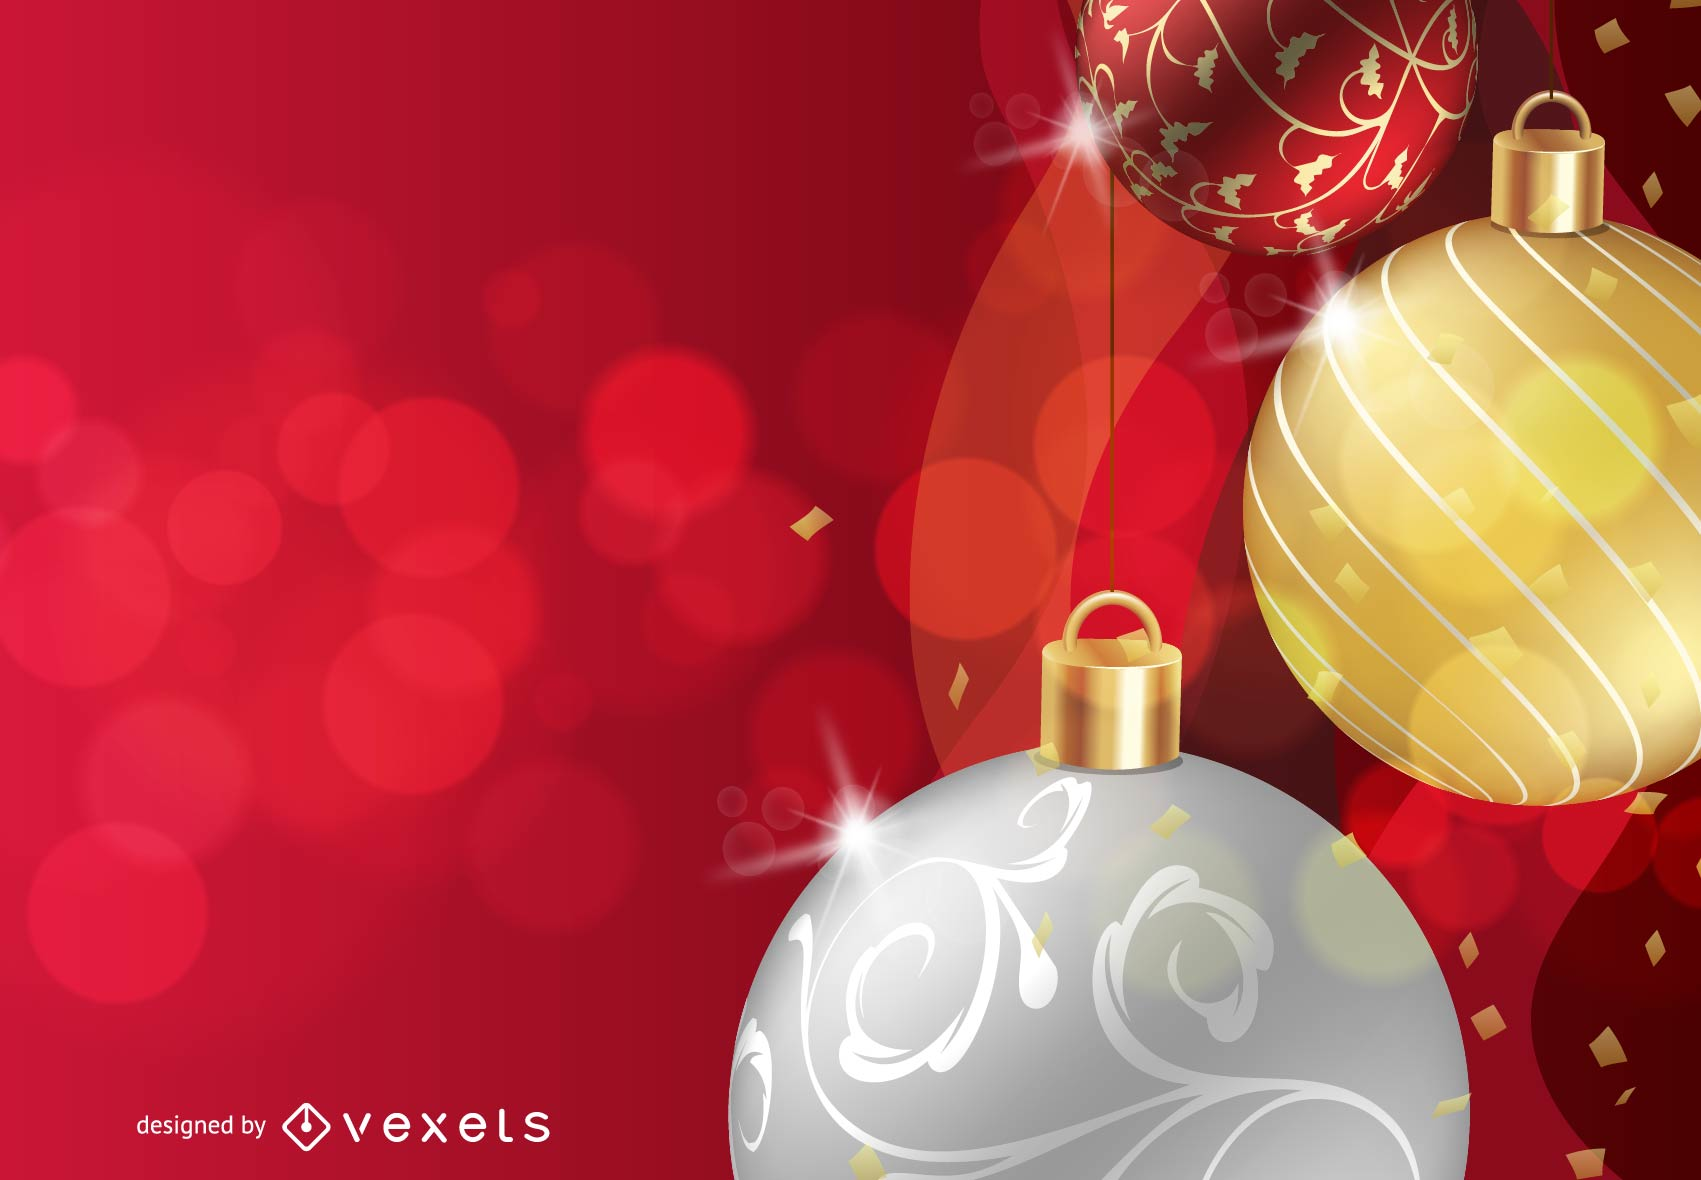 red christmas background download large image 1701x1180px license image user - Red Christmas Background